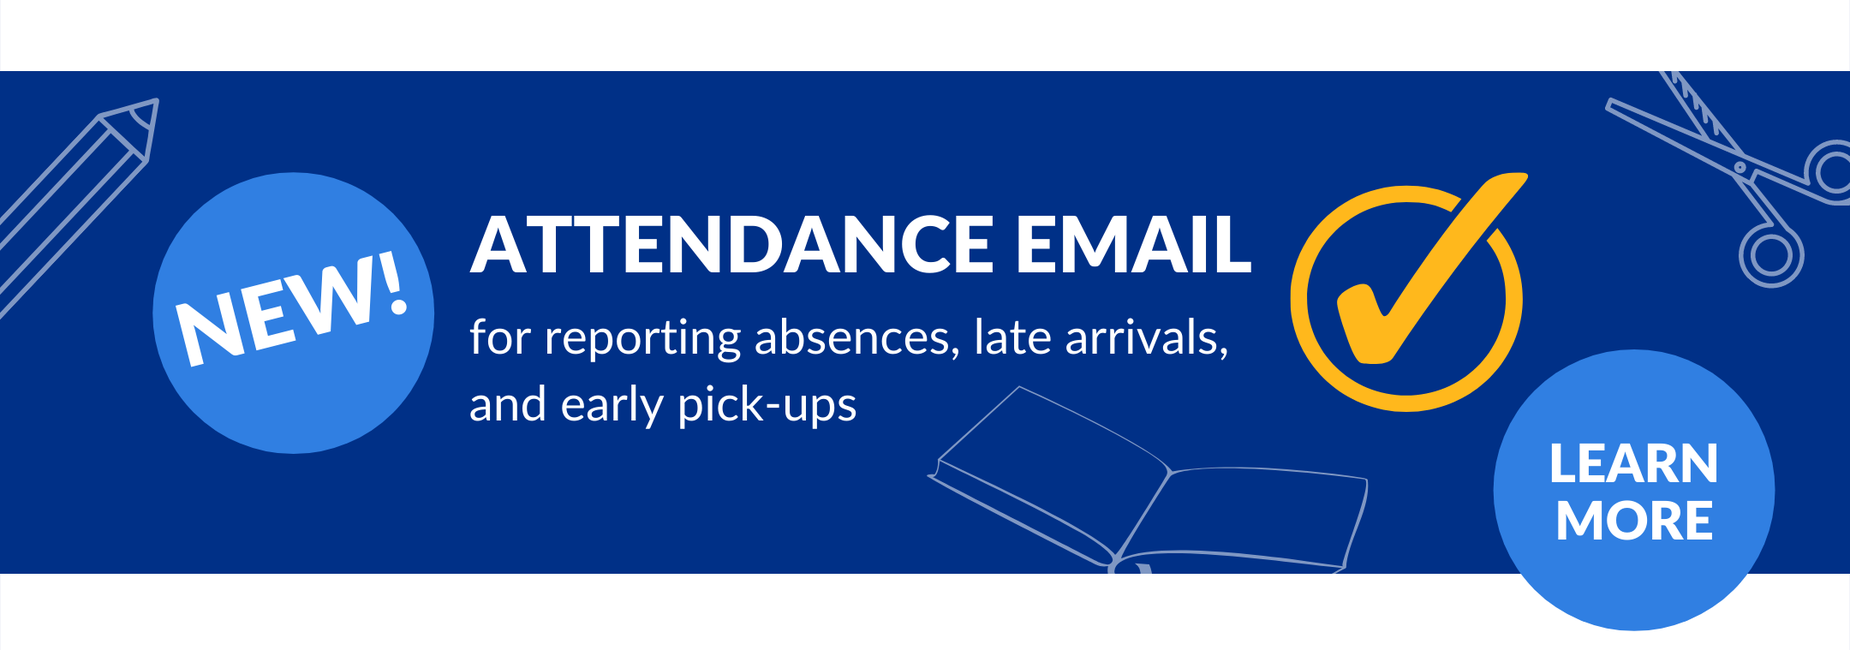 New Attendance Email